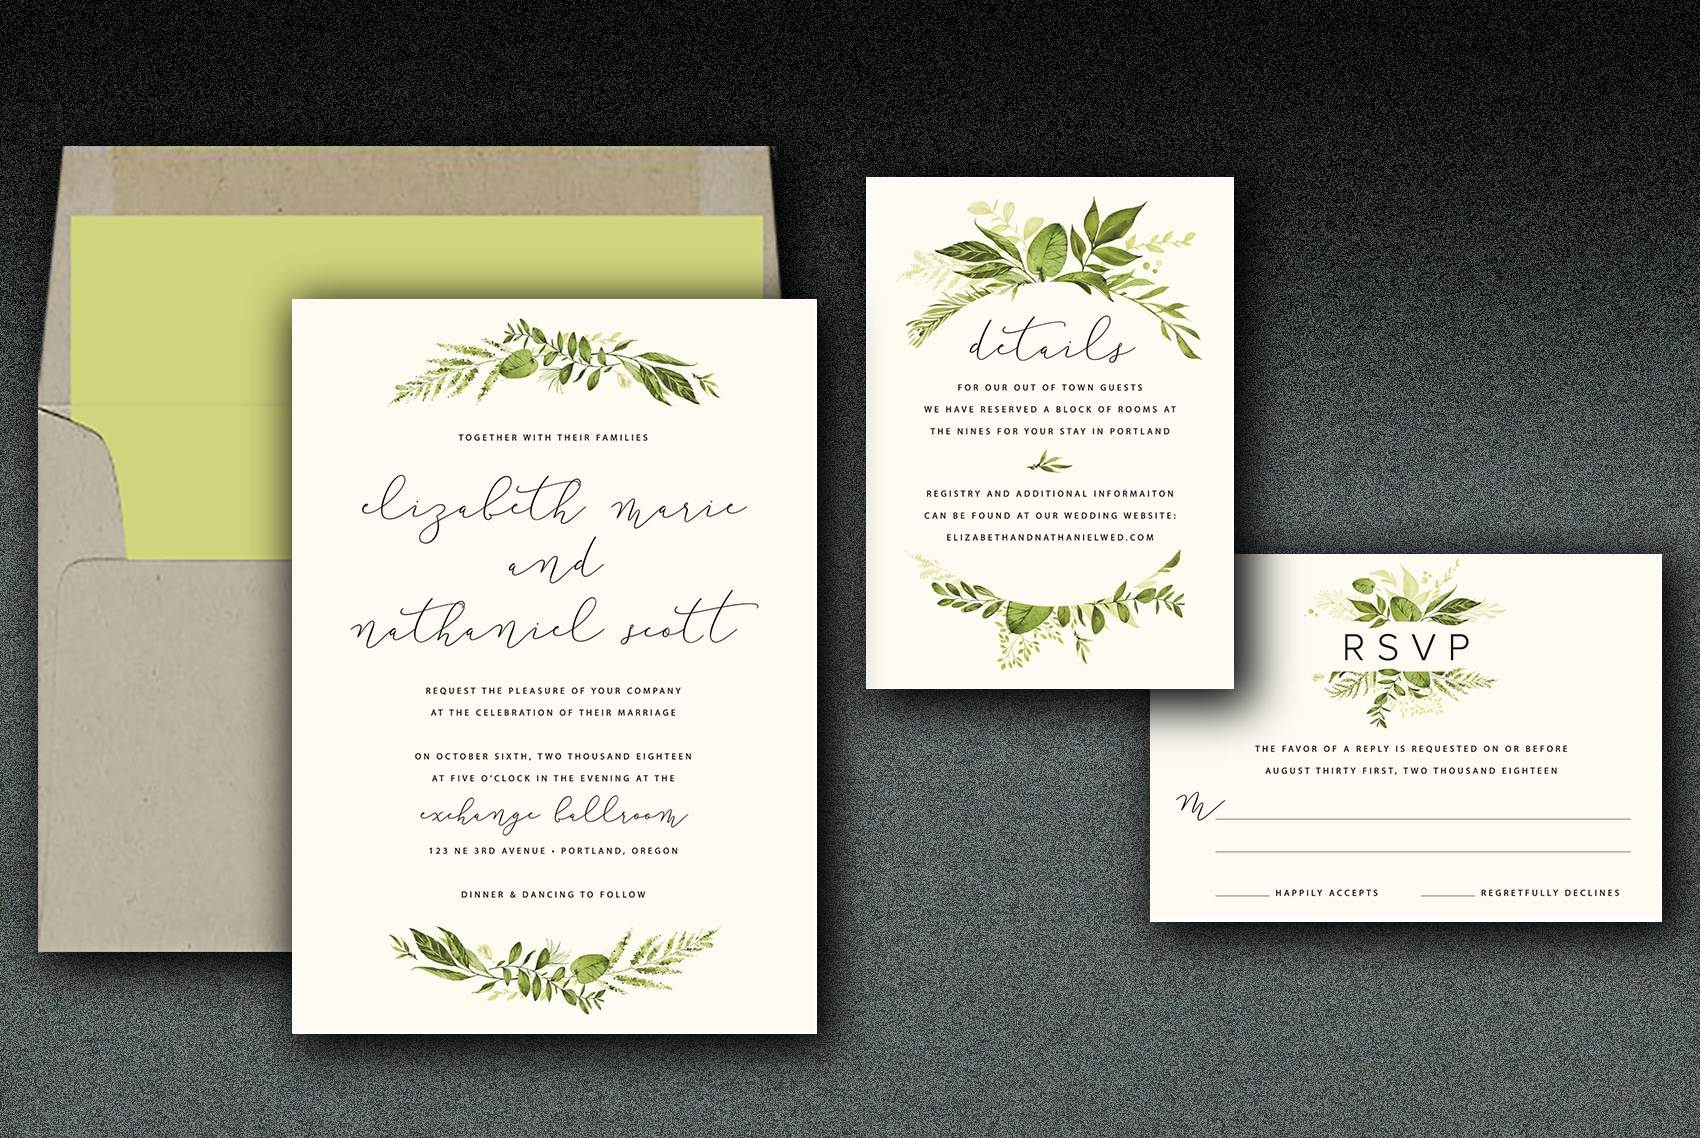 This suite is printed on ivory linen paper complimented with a kraft envelope with either a floral or solid green liner